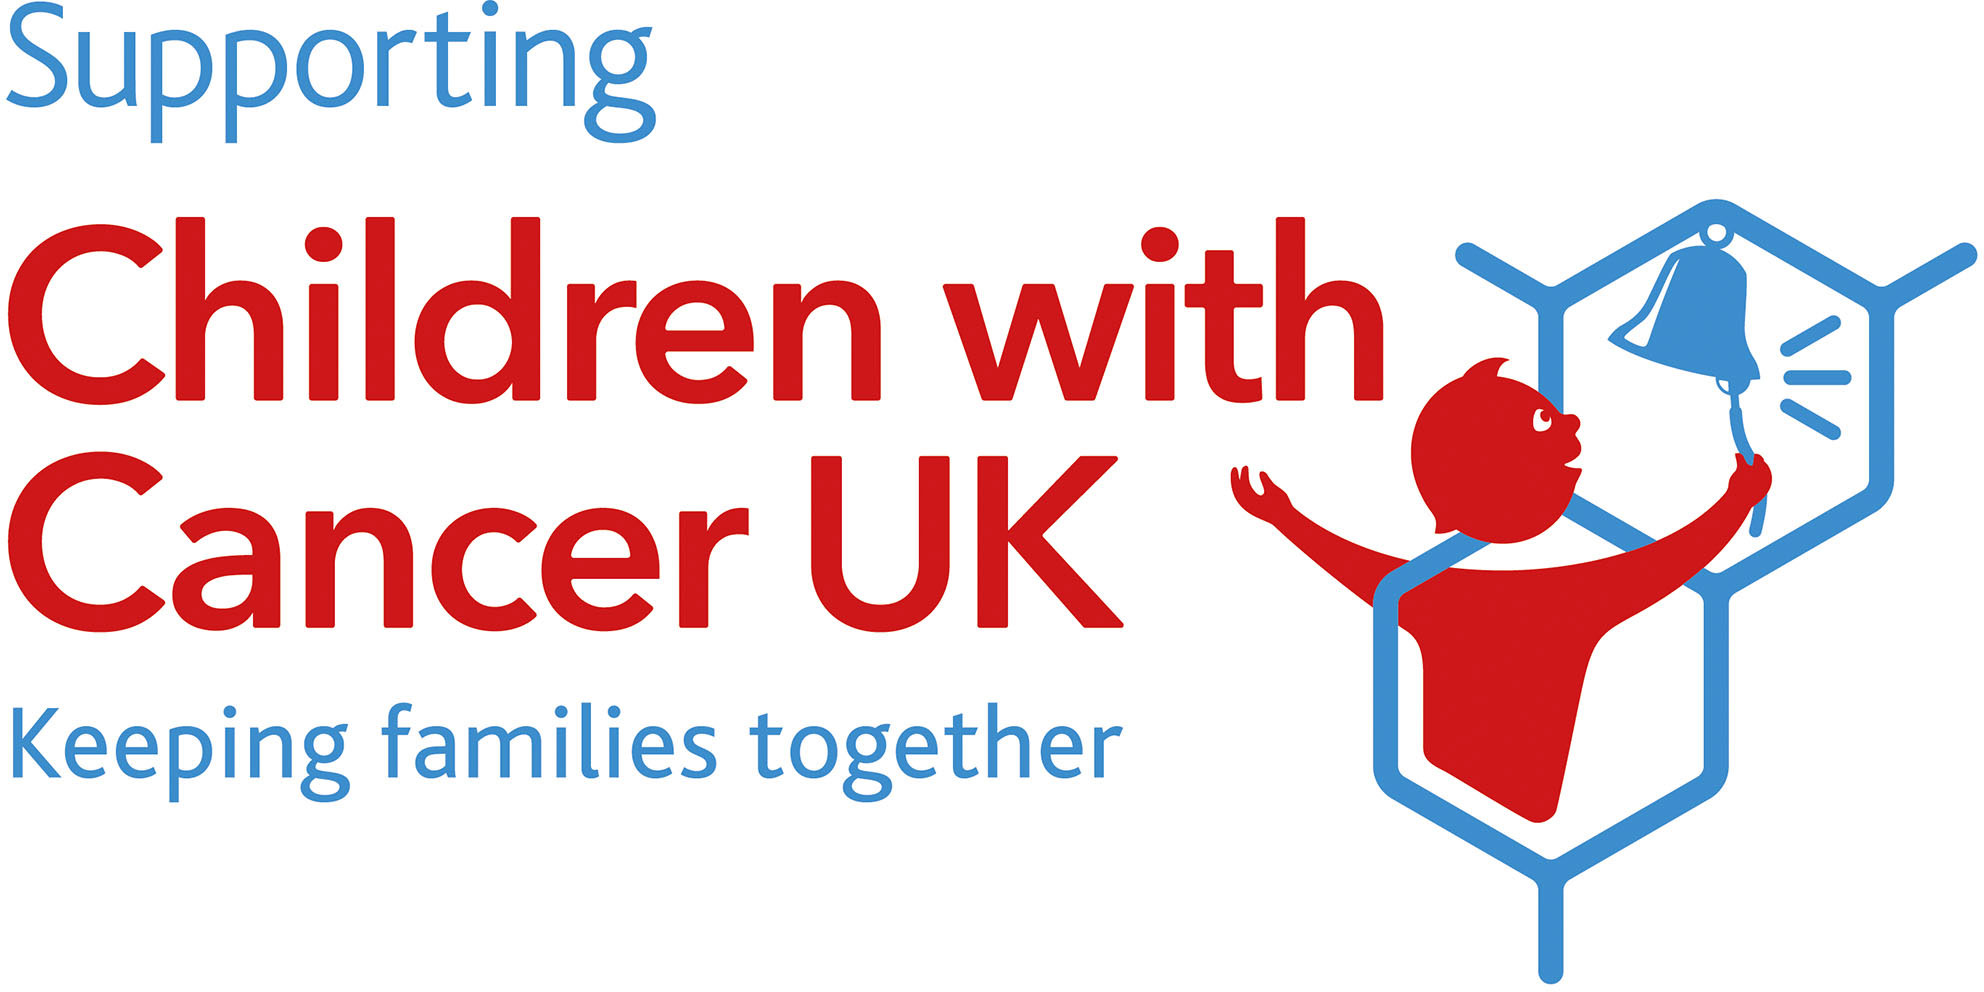 Kent Electrical & Fire support Children with Cancer UK